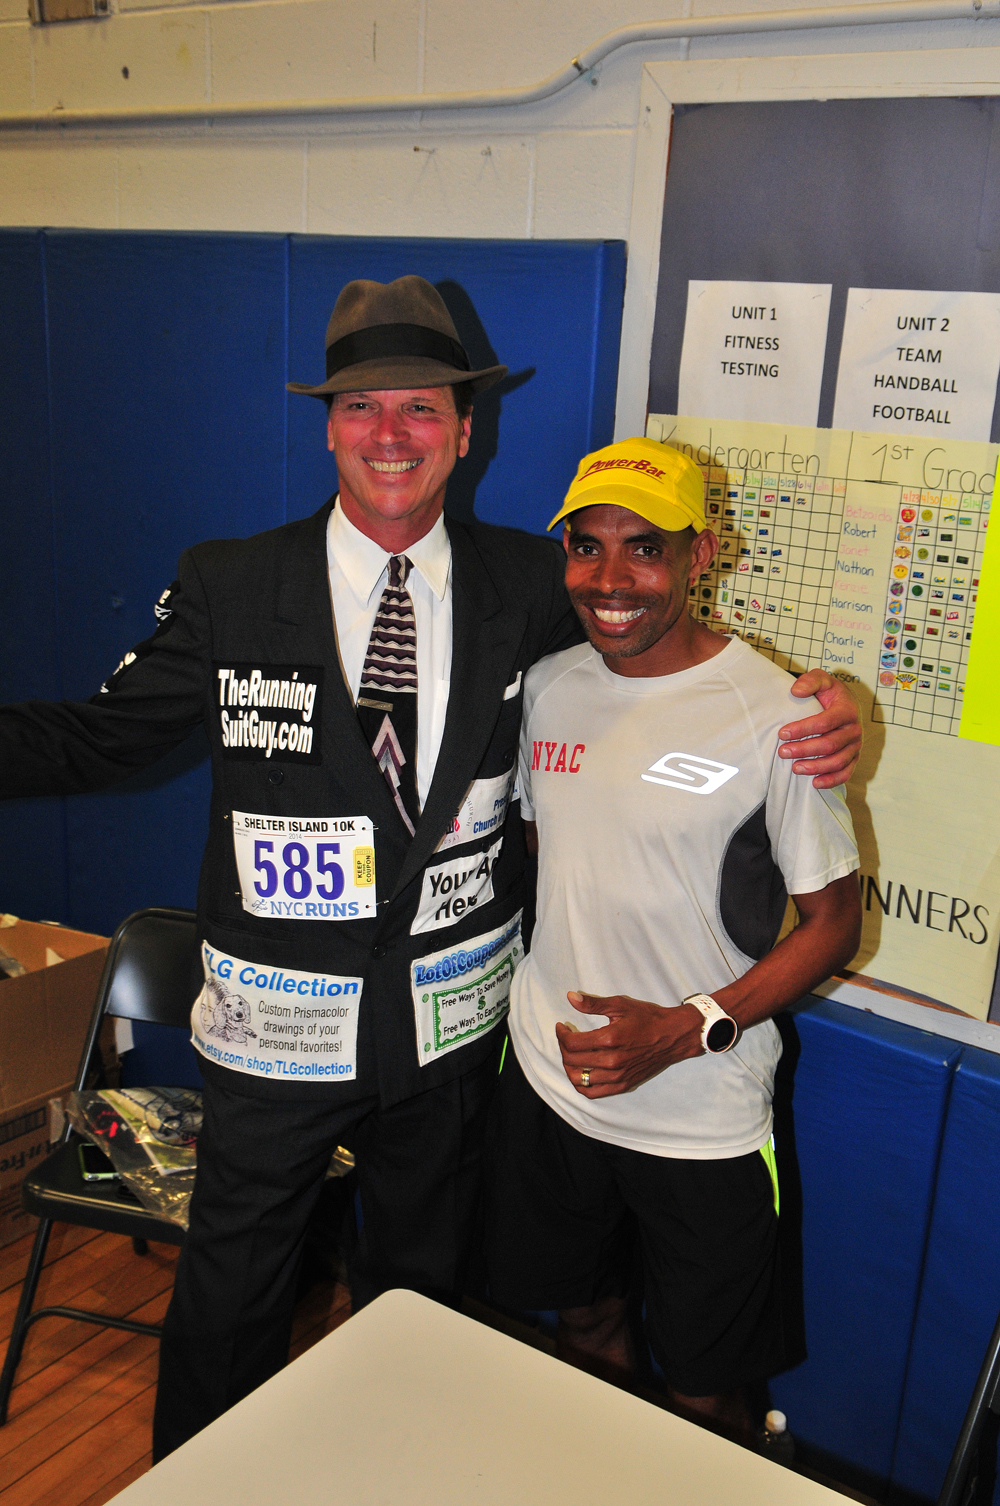 Boston Marathon winner Meb Keflezighi won a silver medal in the 2004 Olympics in Athens, Greece. (Credit: Bill Landon)